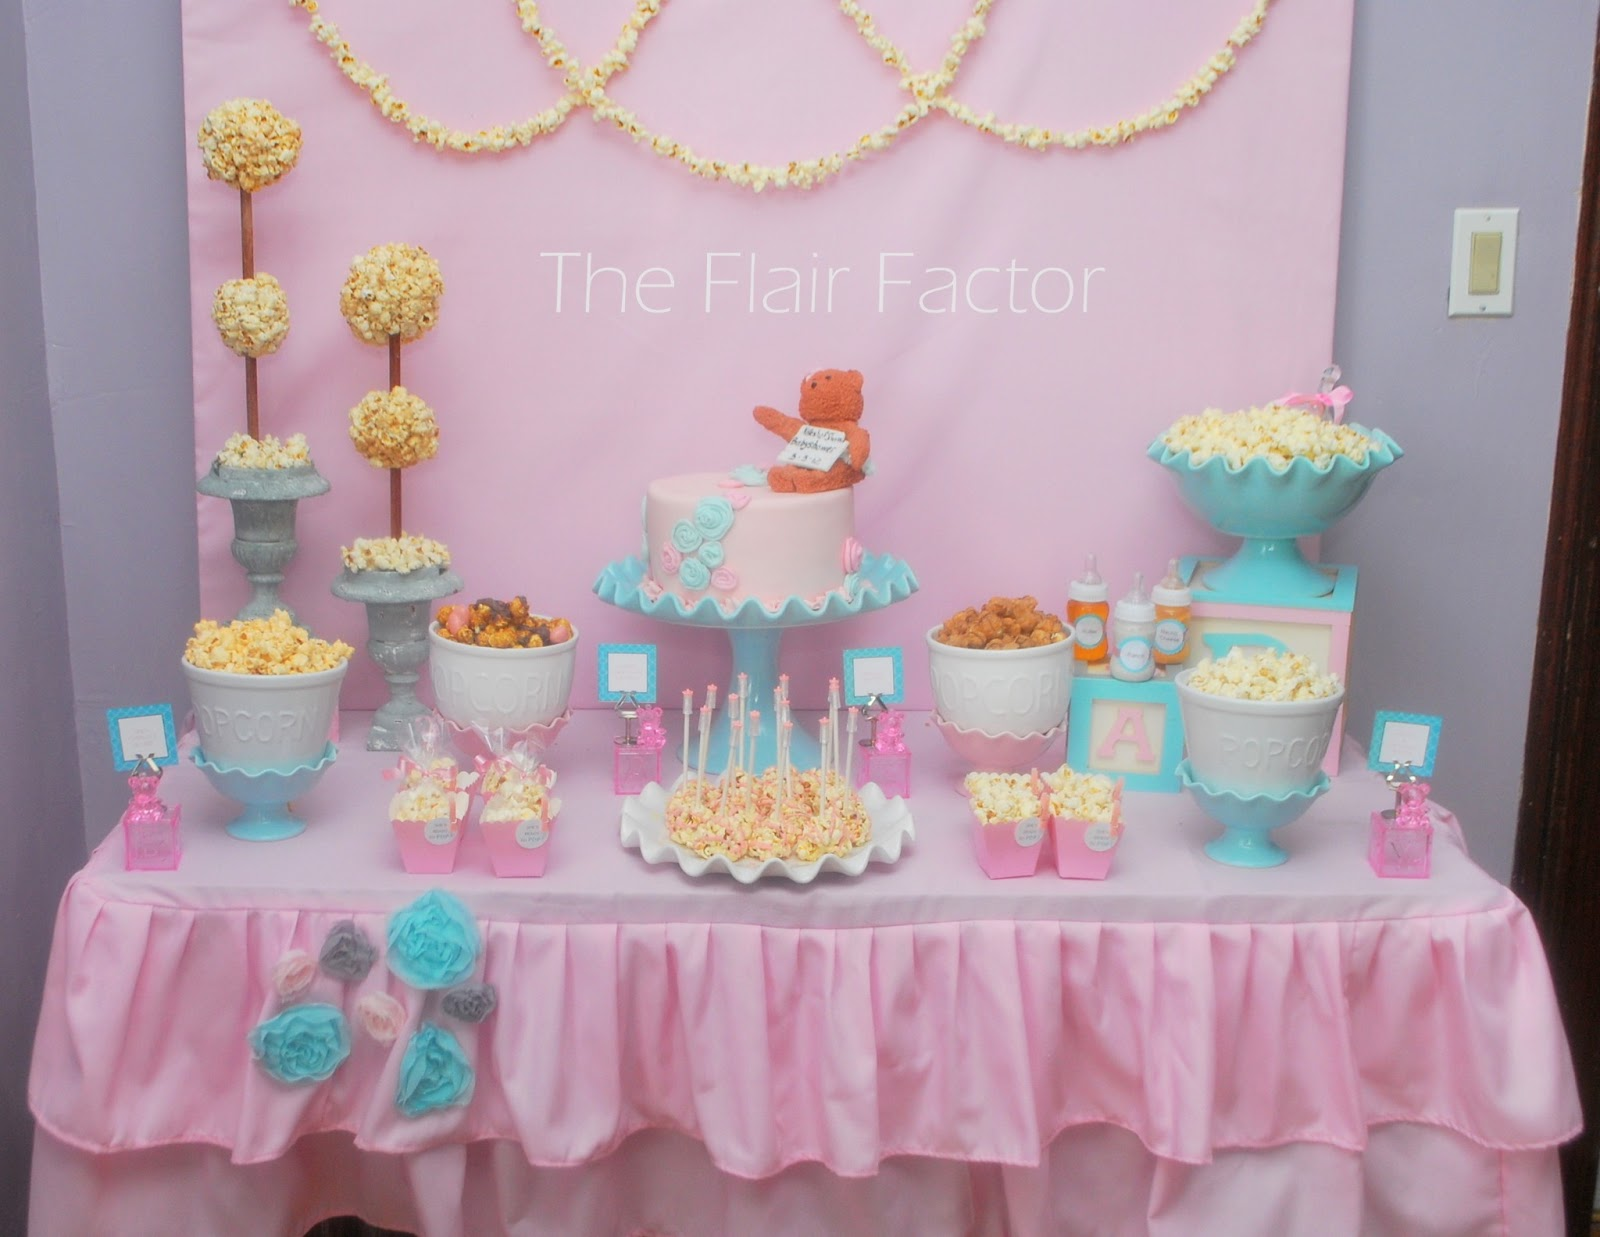 f te fanatic baby shower popcorn buffet. Black Bedroom Furniture Sets. Home Design Ideas